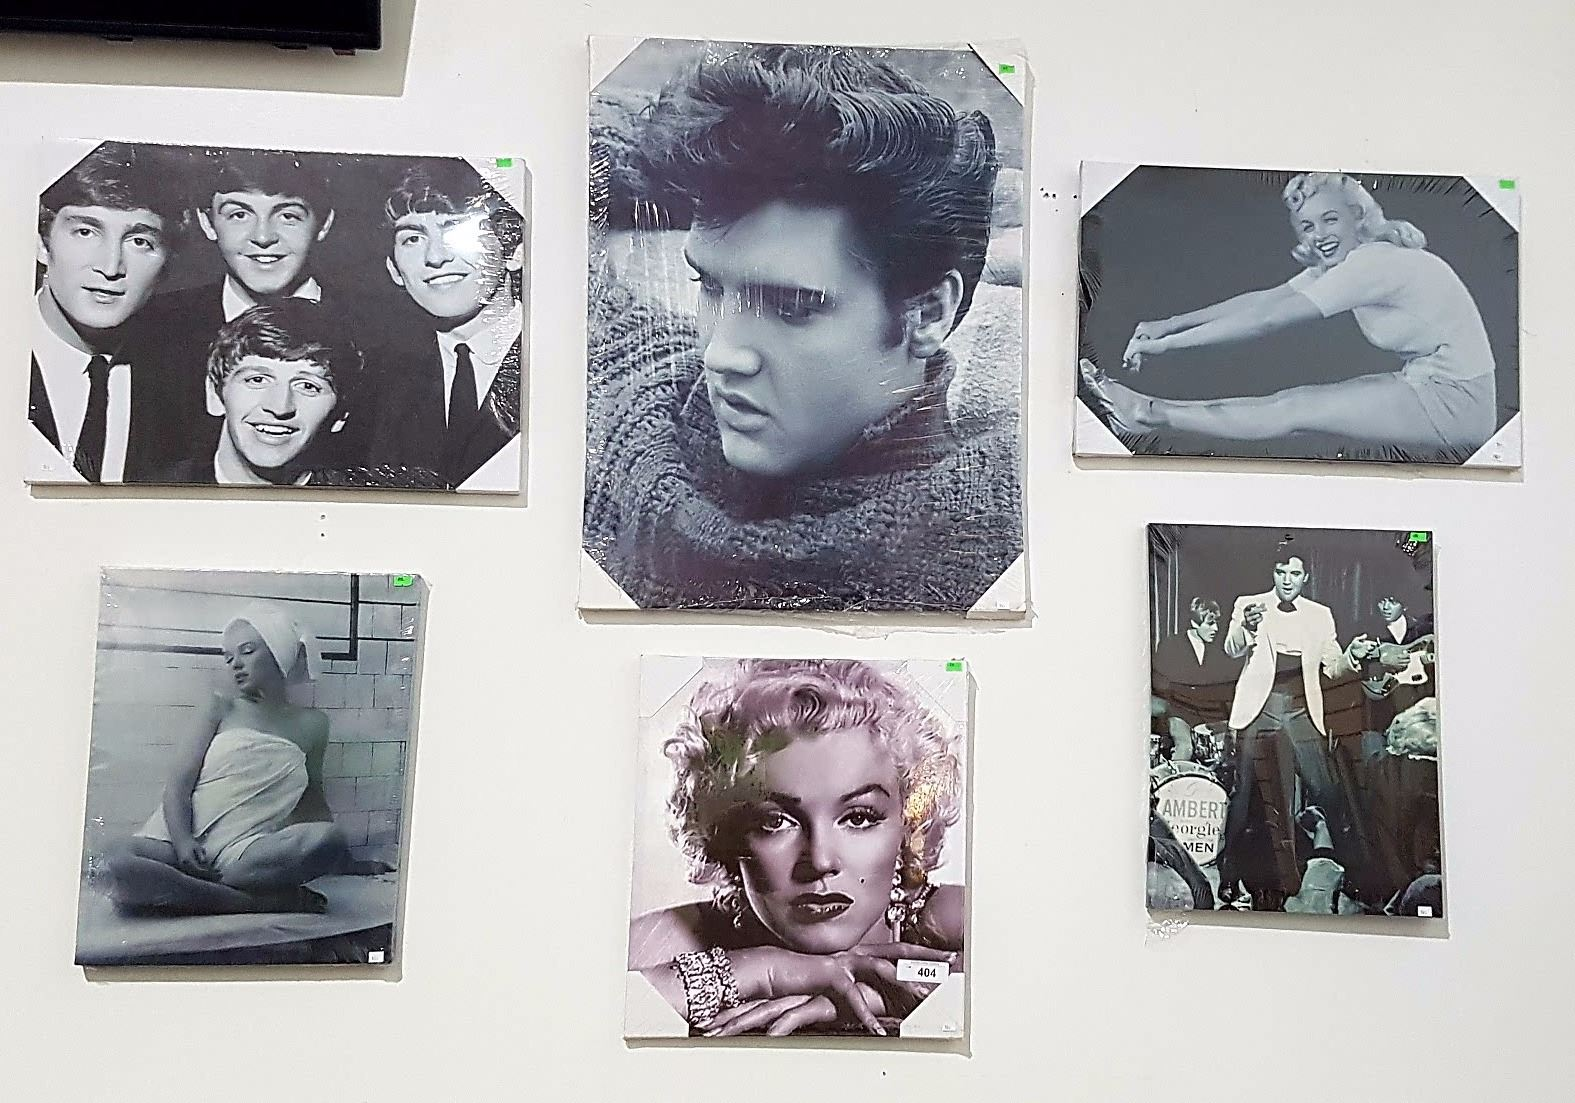 Elvis Marilyn Monroe Lot Of 6 New Marilyn Monroe Elvis Beatles Canvas Prints Grande